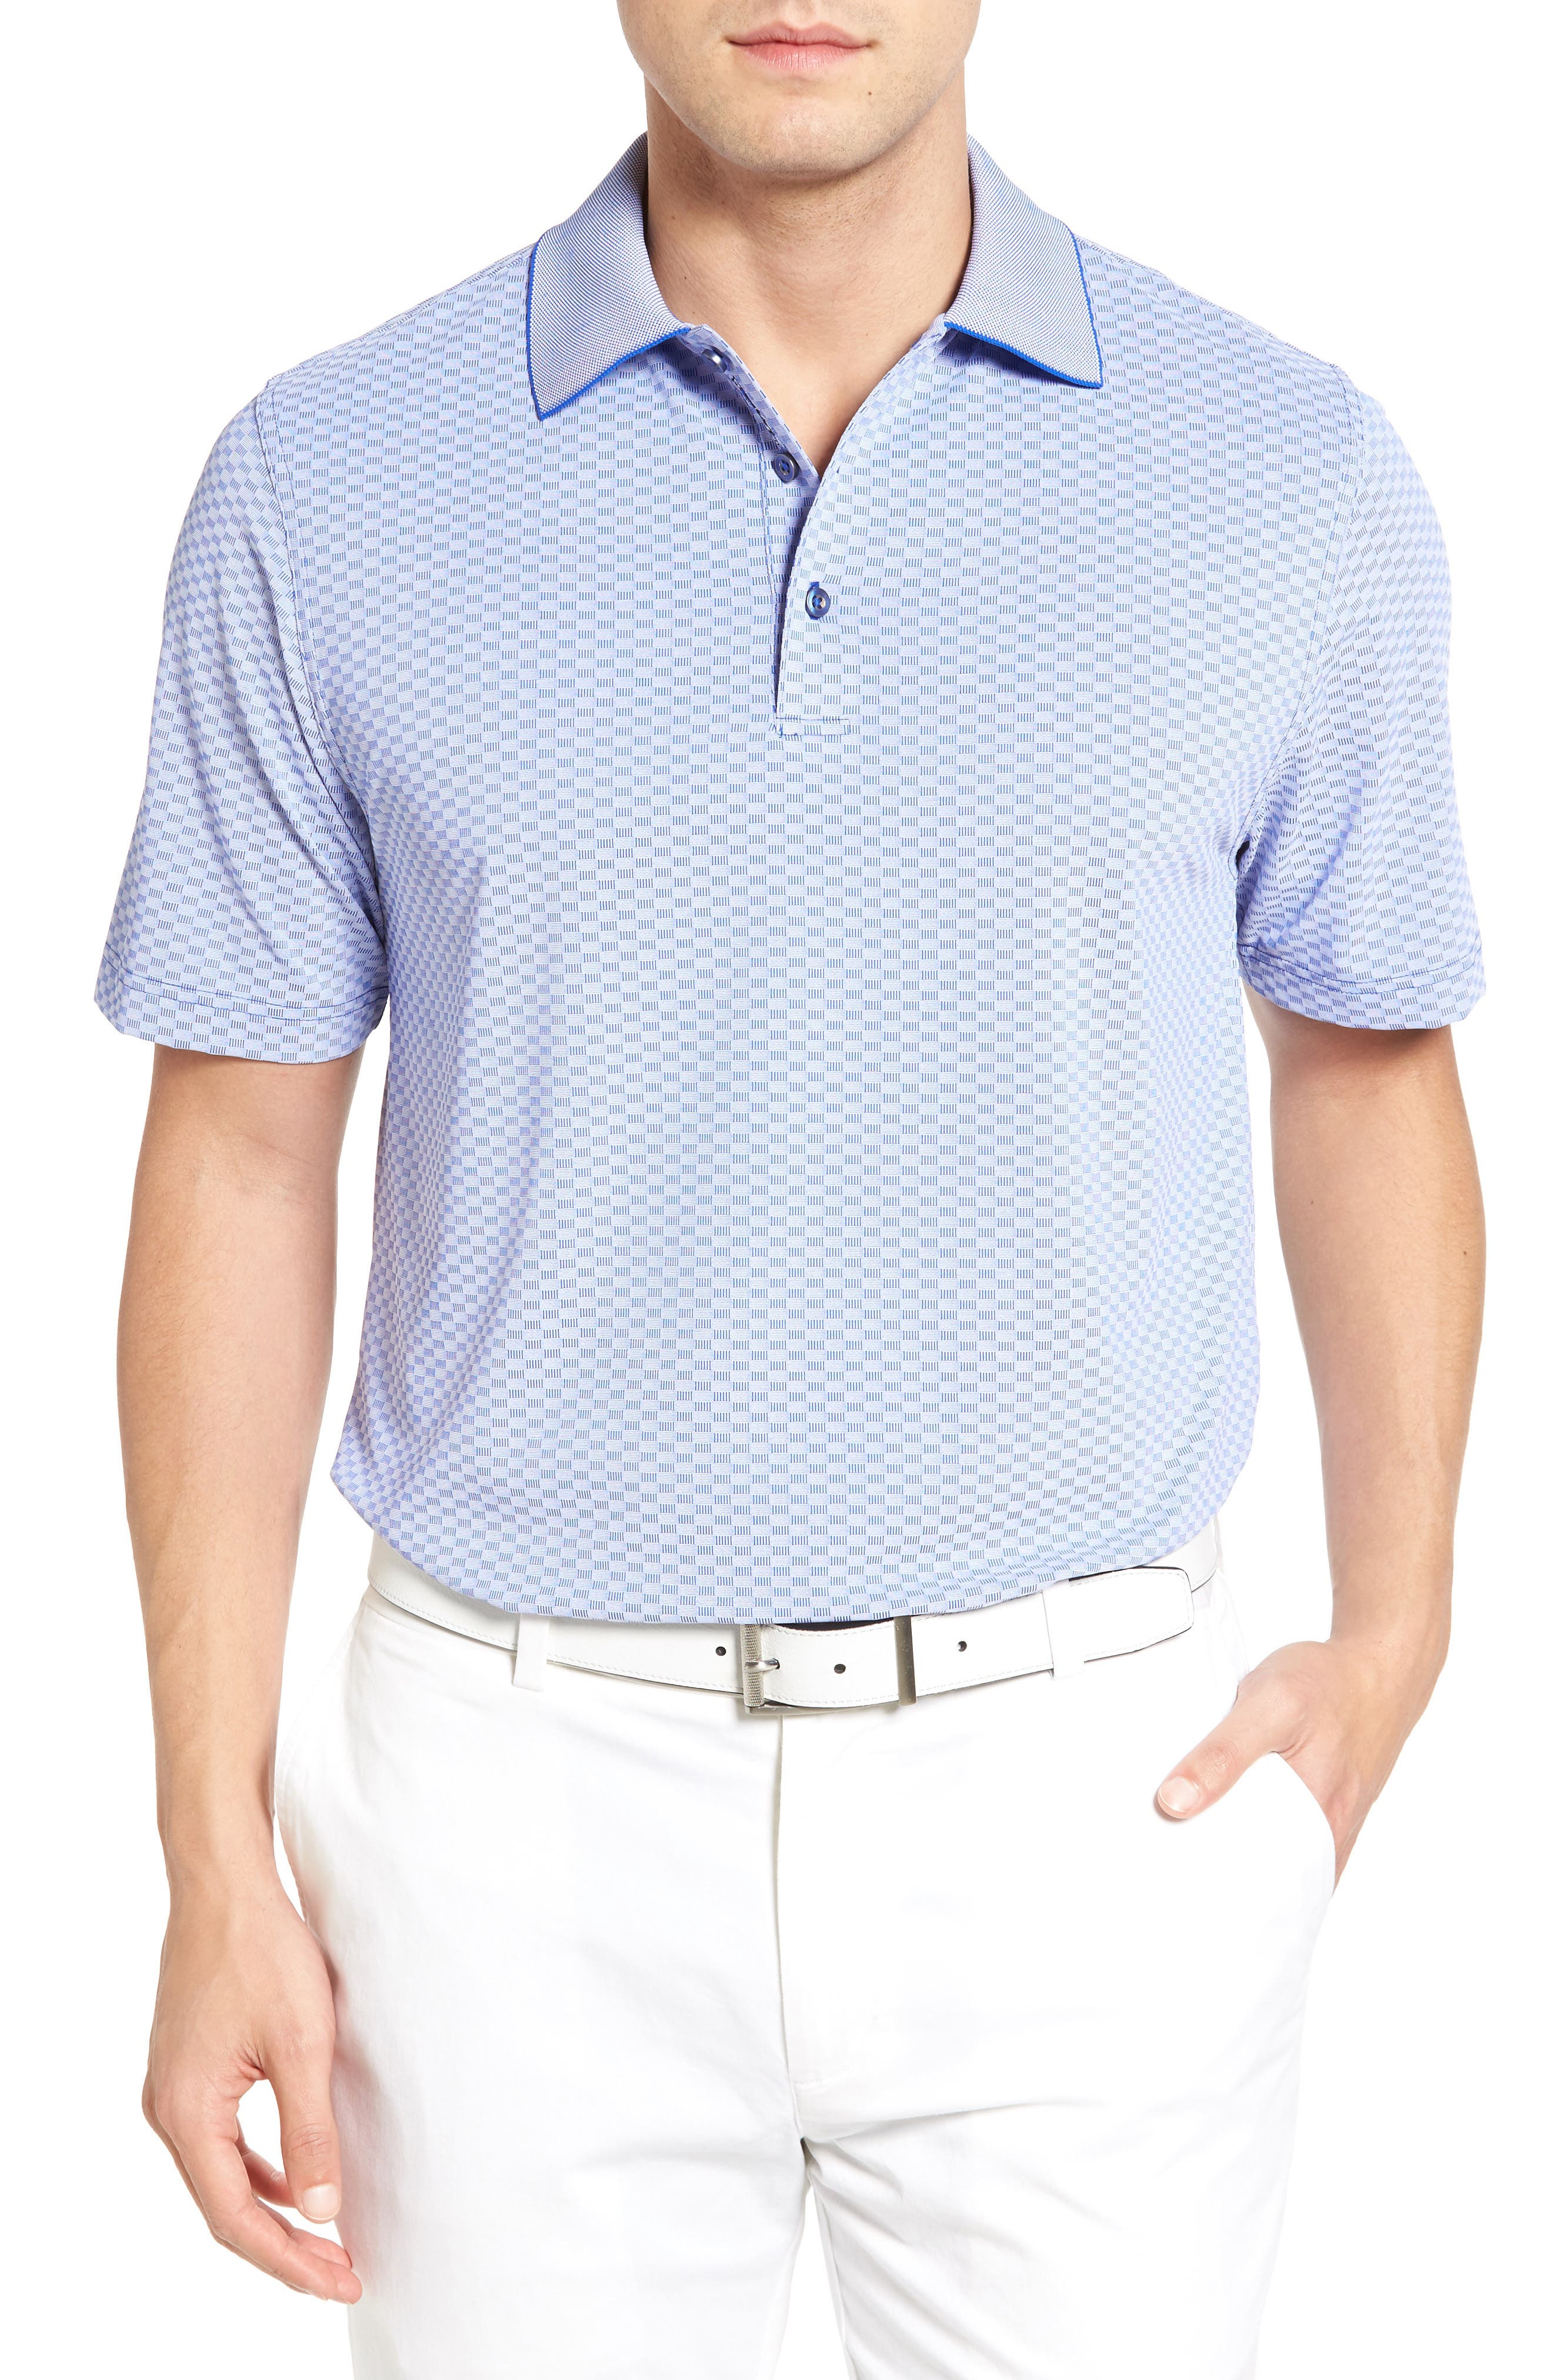 Bobby Jones XH20 Rye Check Stretch Golf Polo